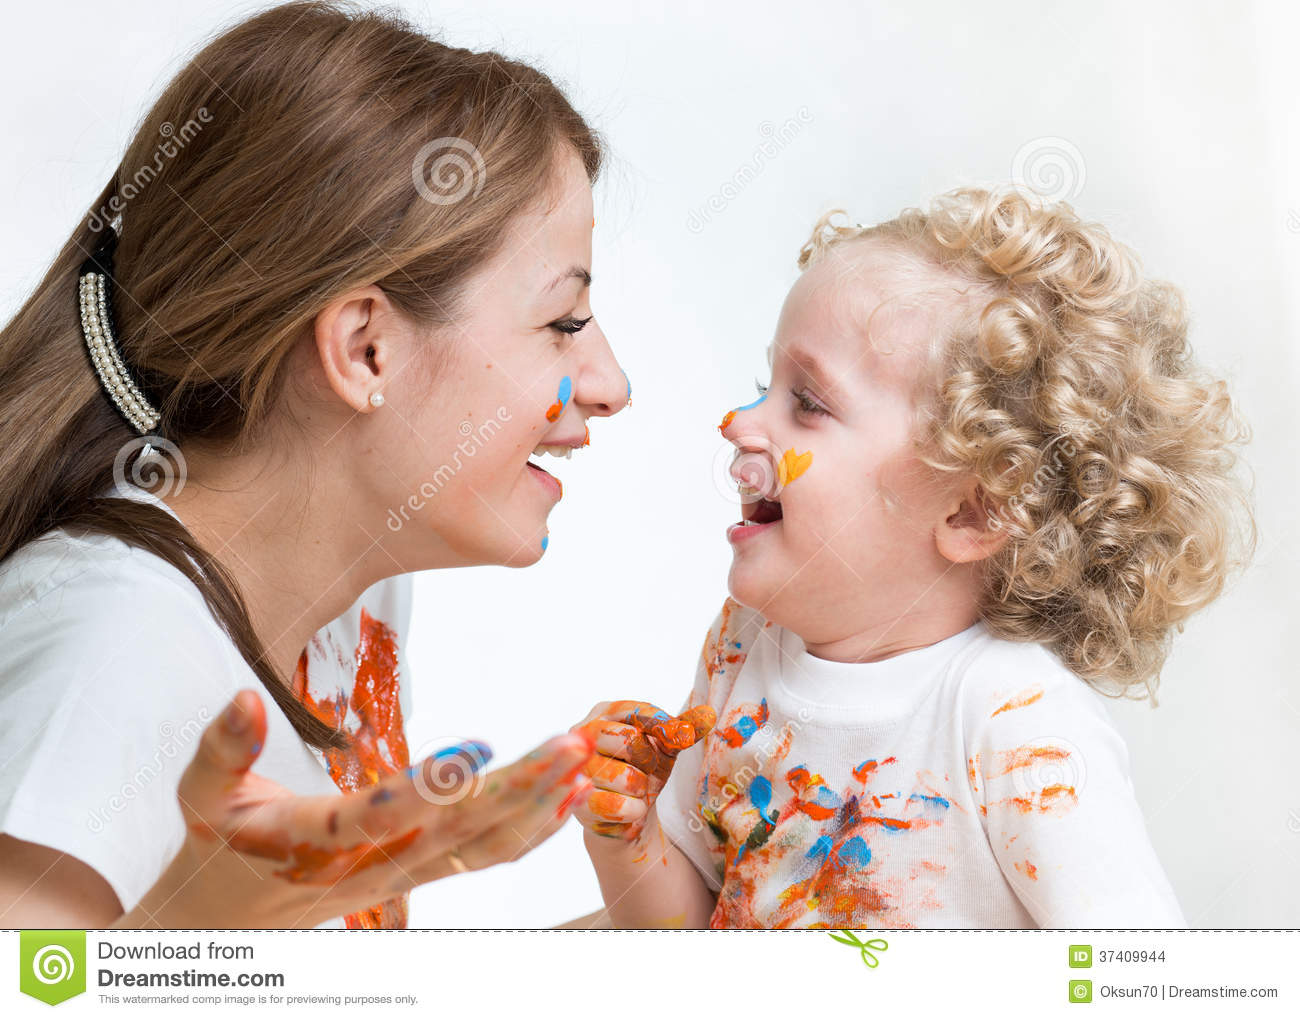 Mom and kid girl paint